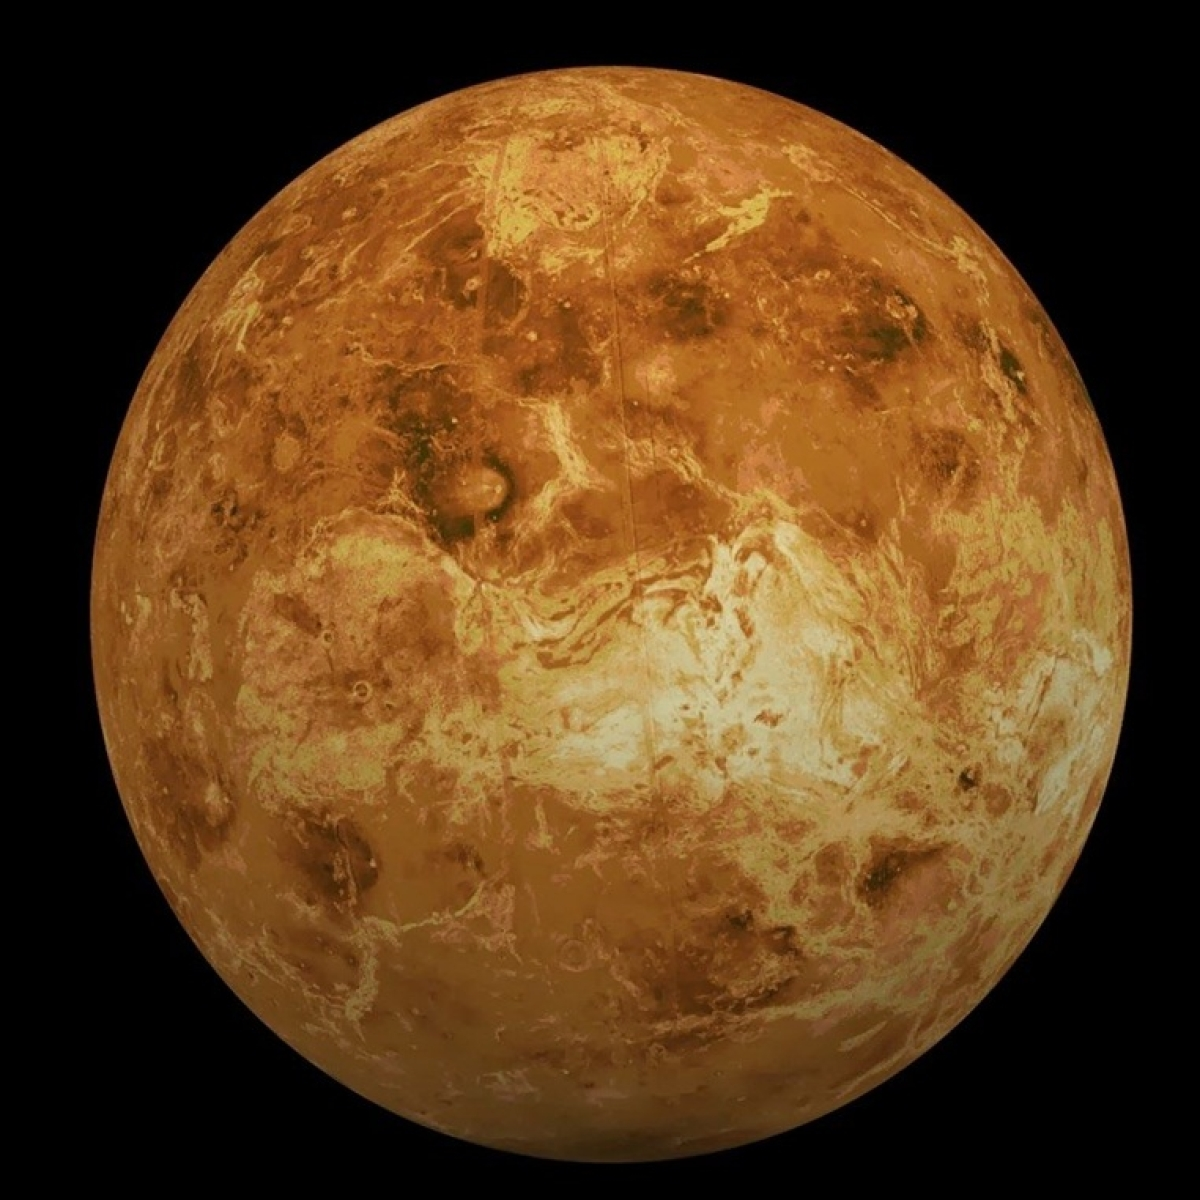 Venus may have been habitable once: Study